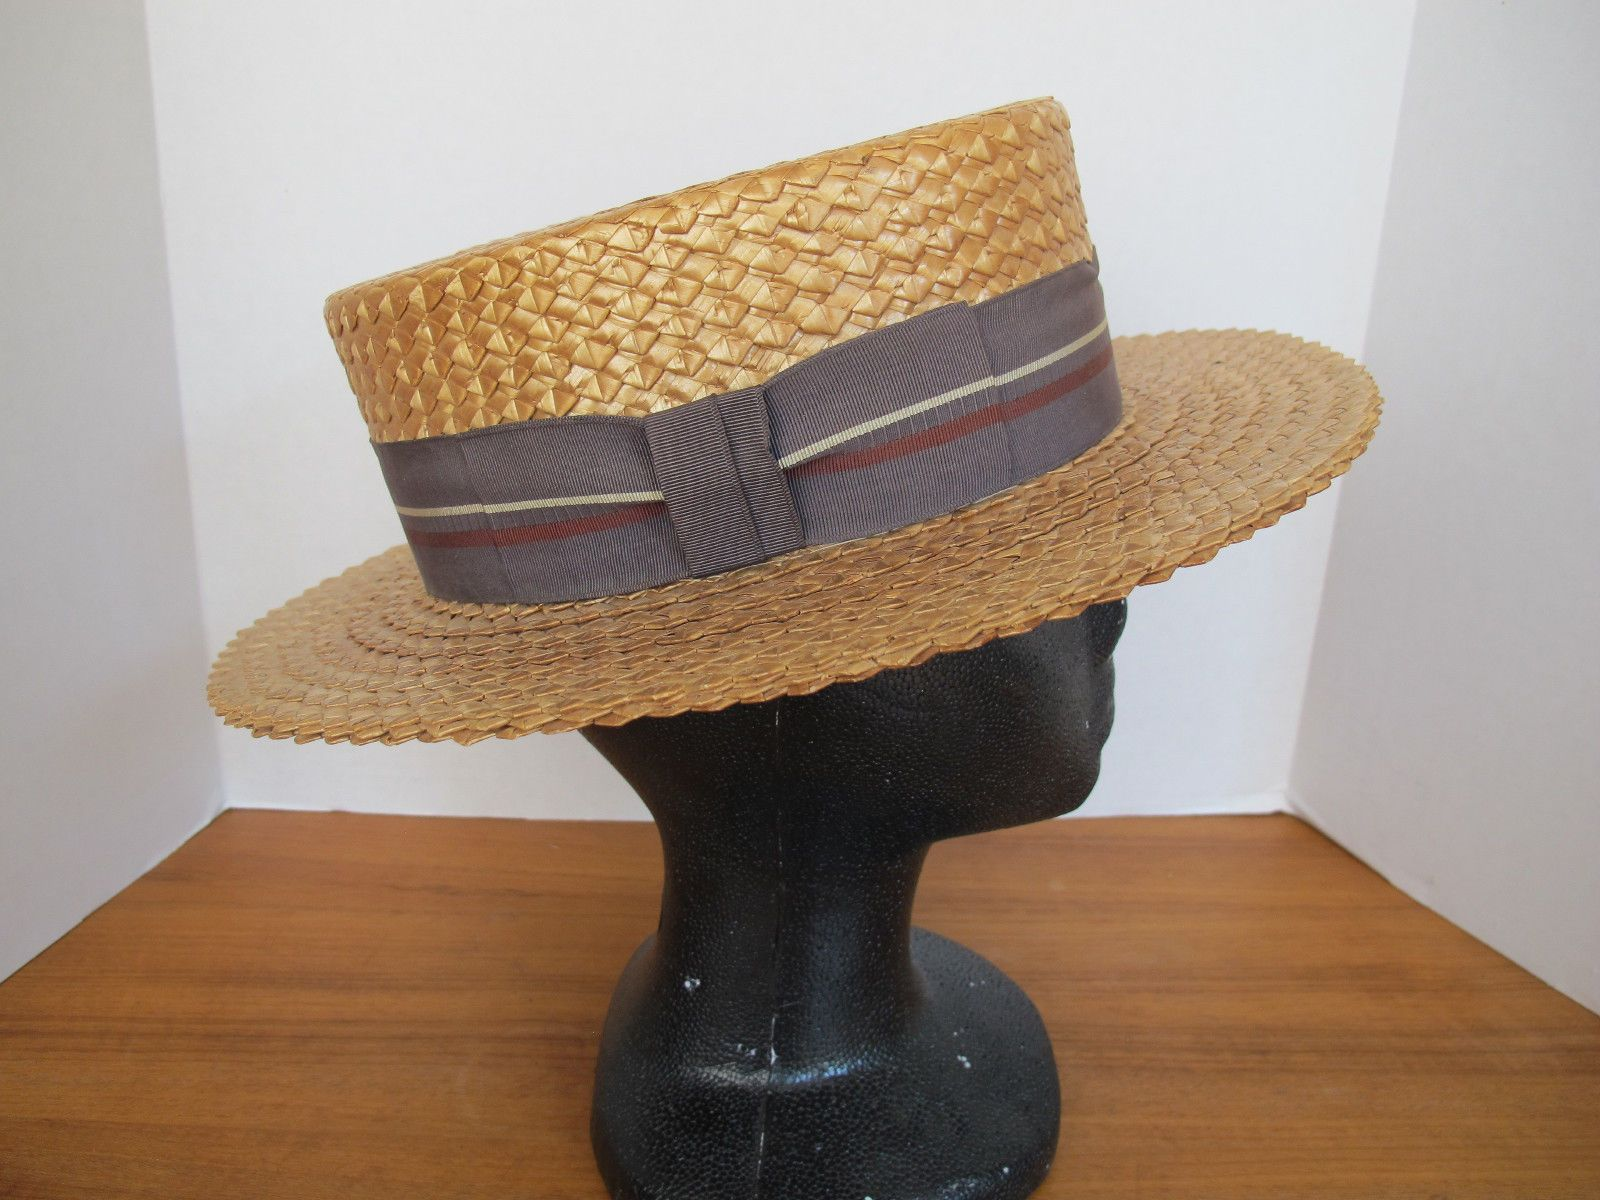 Vintage Antique Straw Boater Hat Mens Skimmer Mallory New York 6 7 8 ... 748226229ec